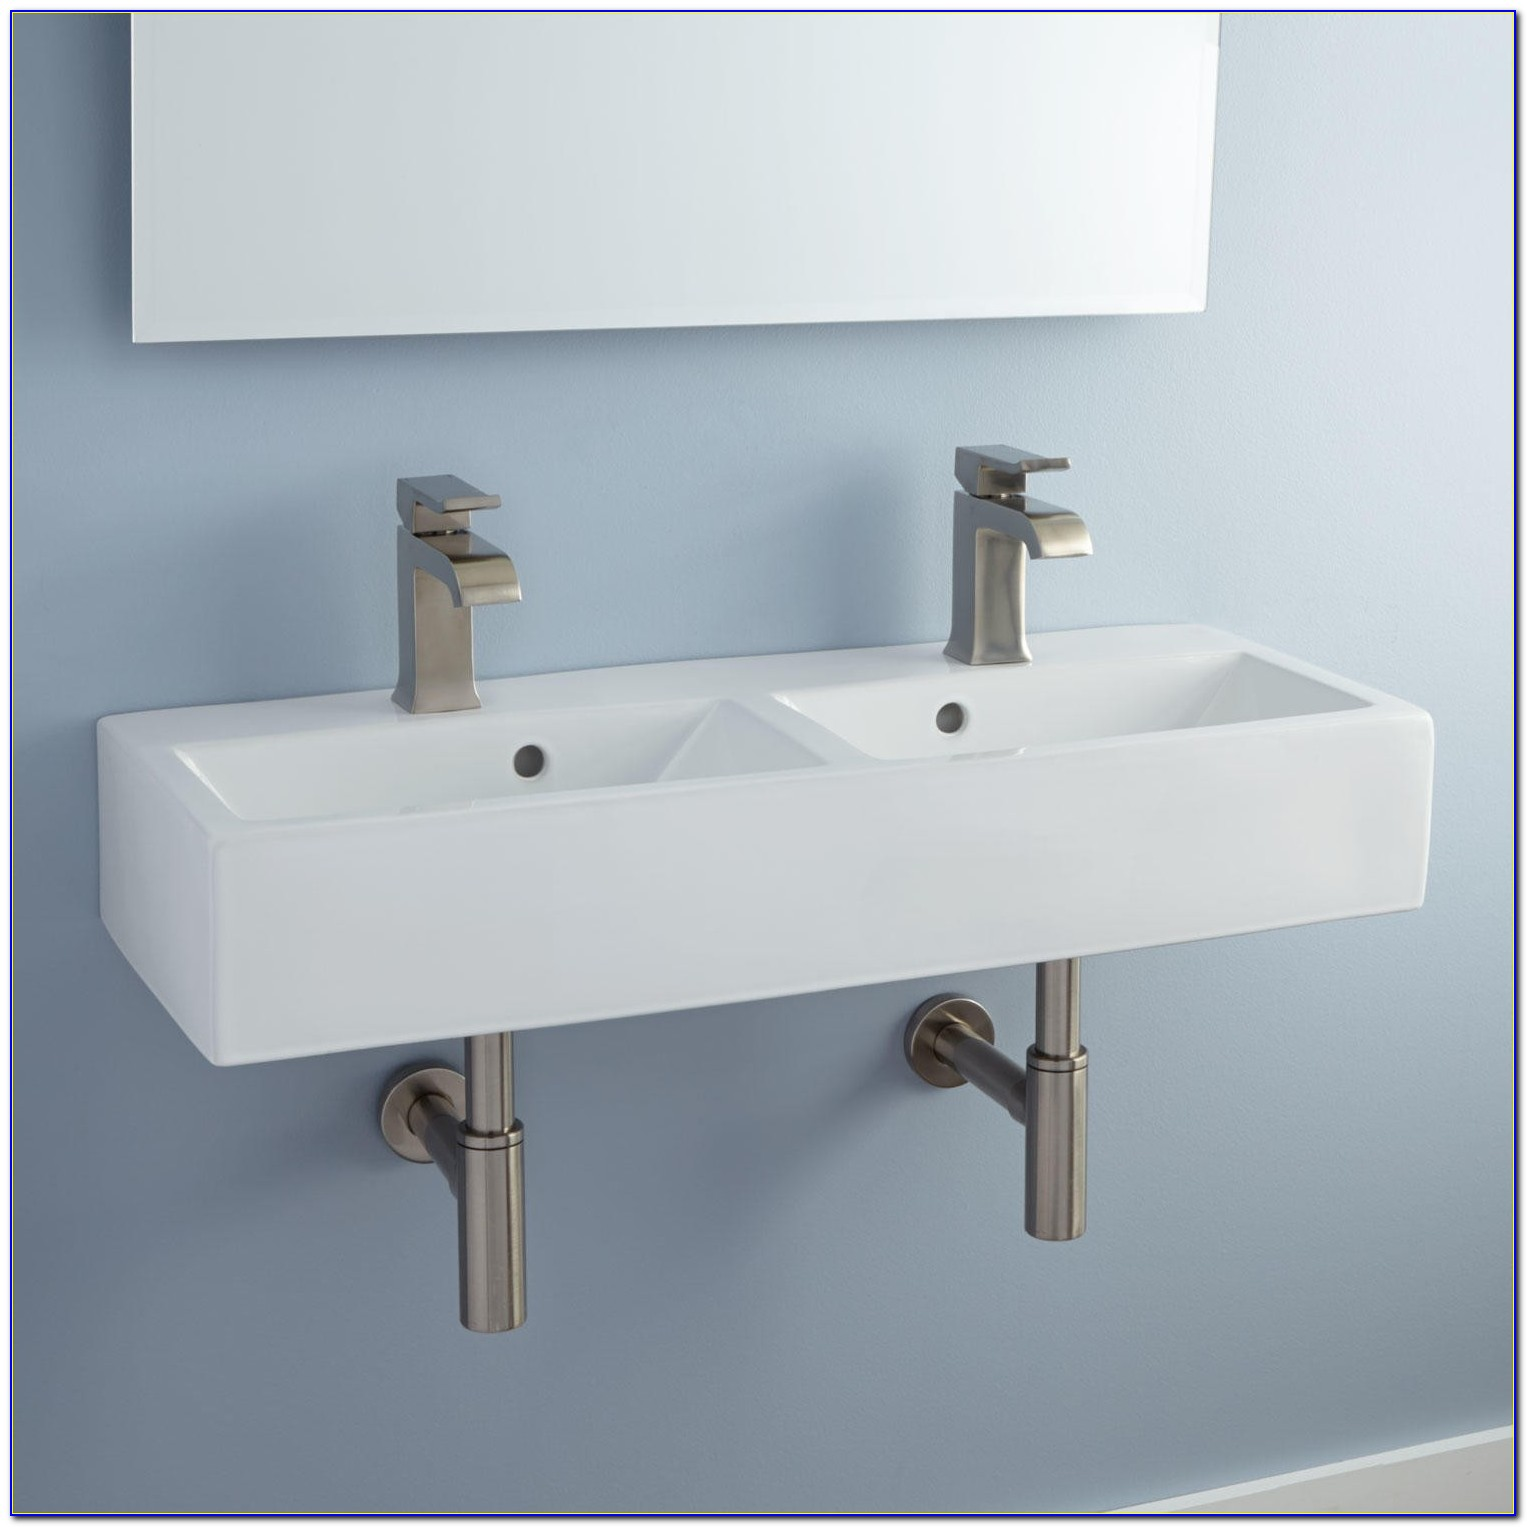 Wall Mount Sink Faucet With Sprayer